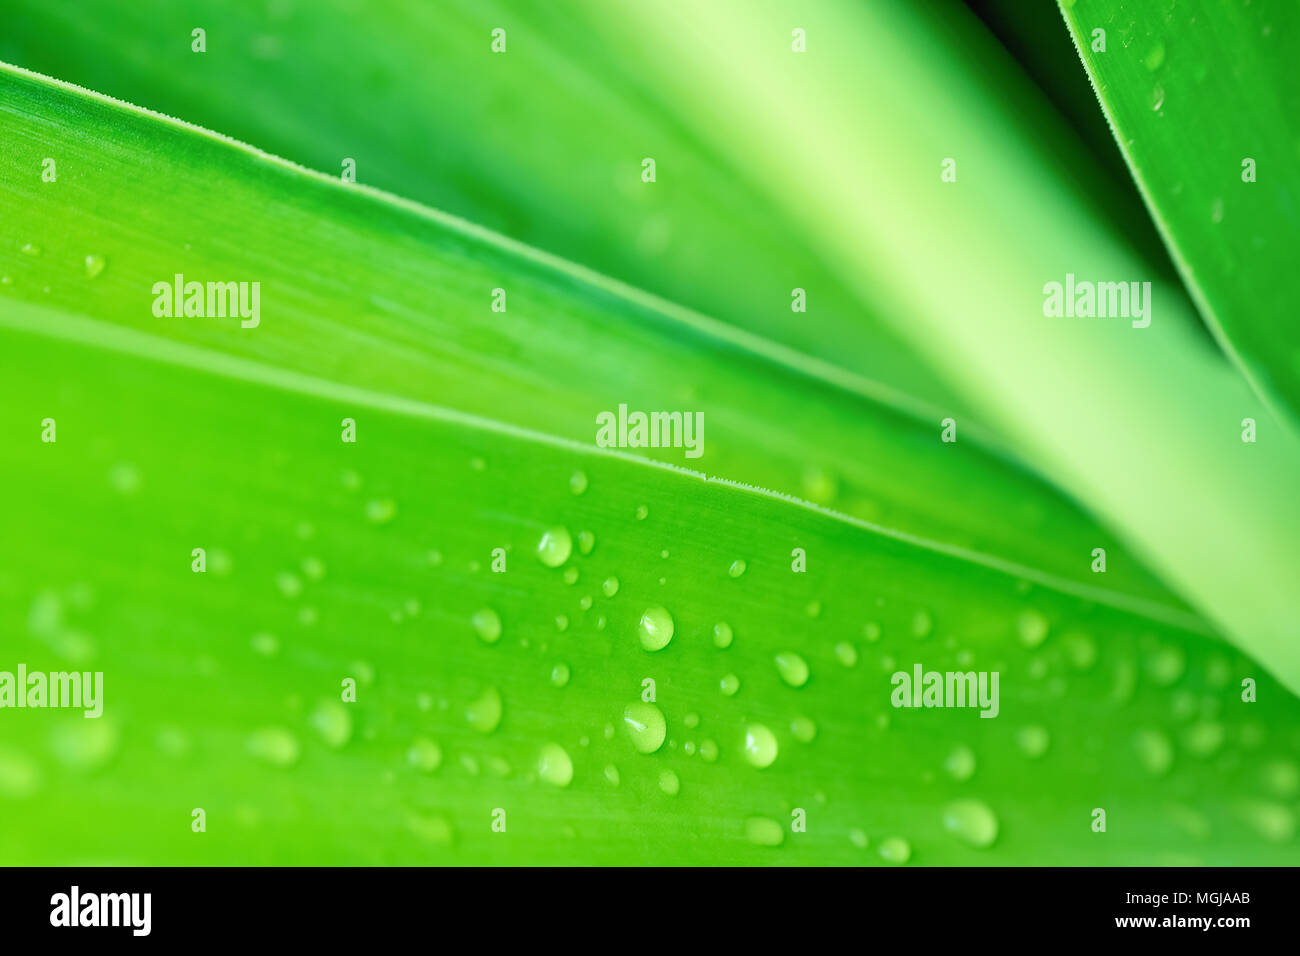 Blurred Abstract Botanical Nature Background. Elegant Large Green Palm Leaf with Rain Drops. Background Wallpaper Poster Template. Organic Cosmetics W